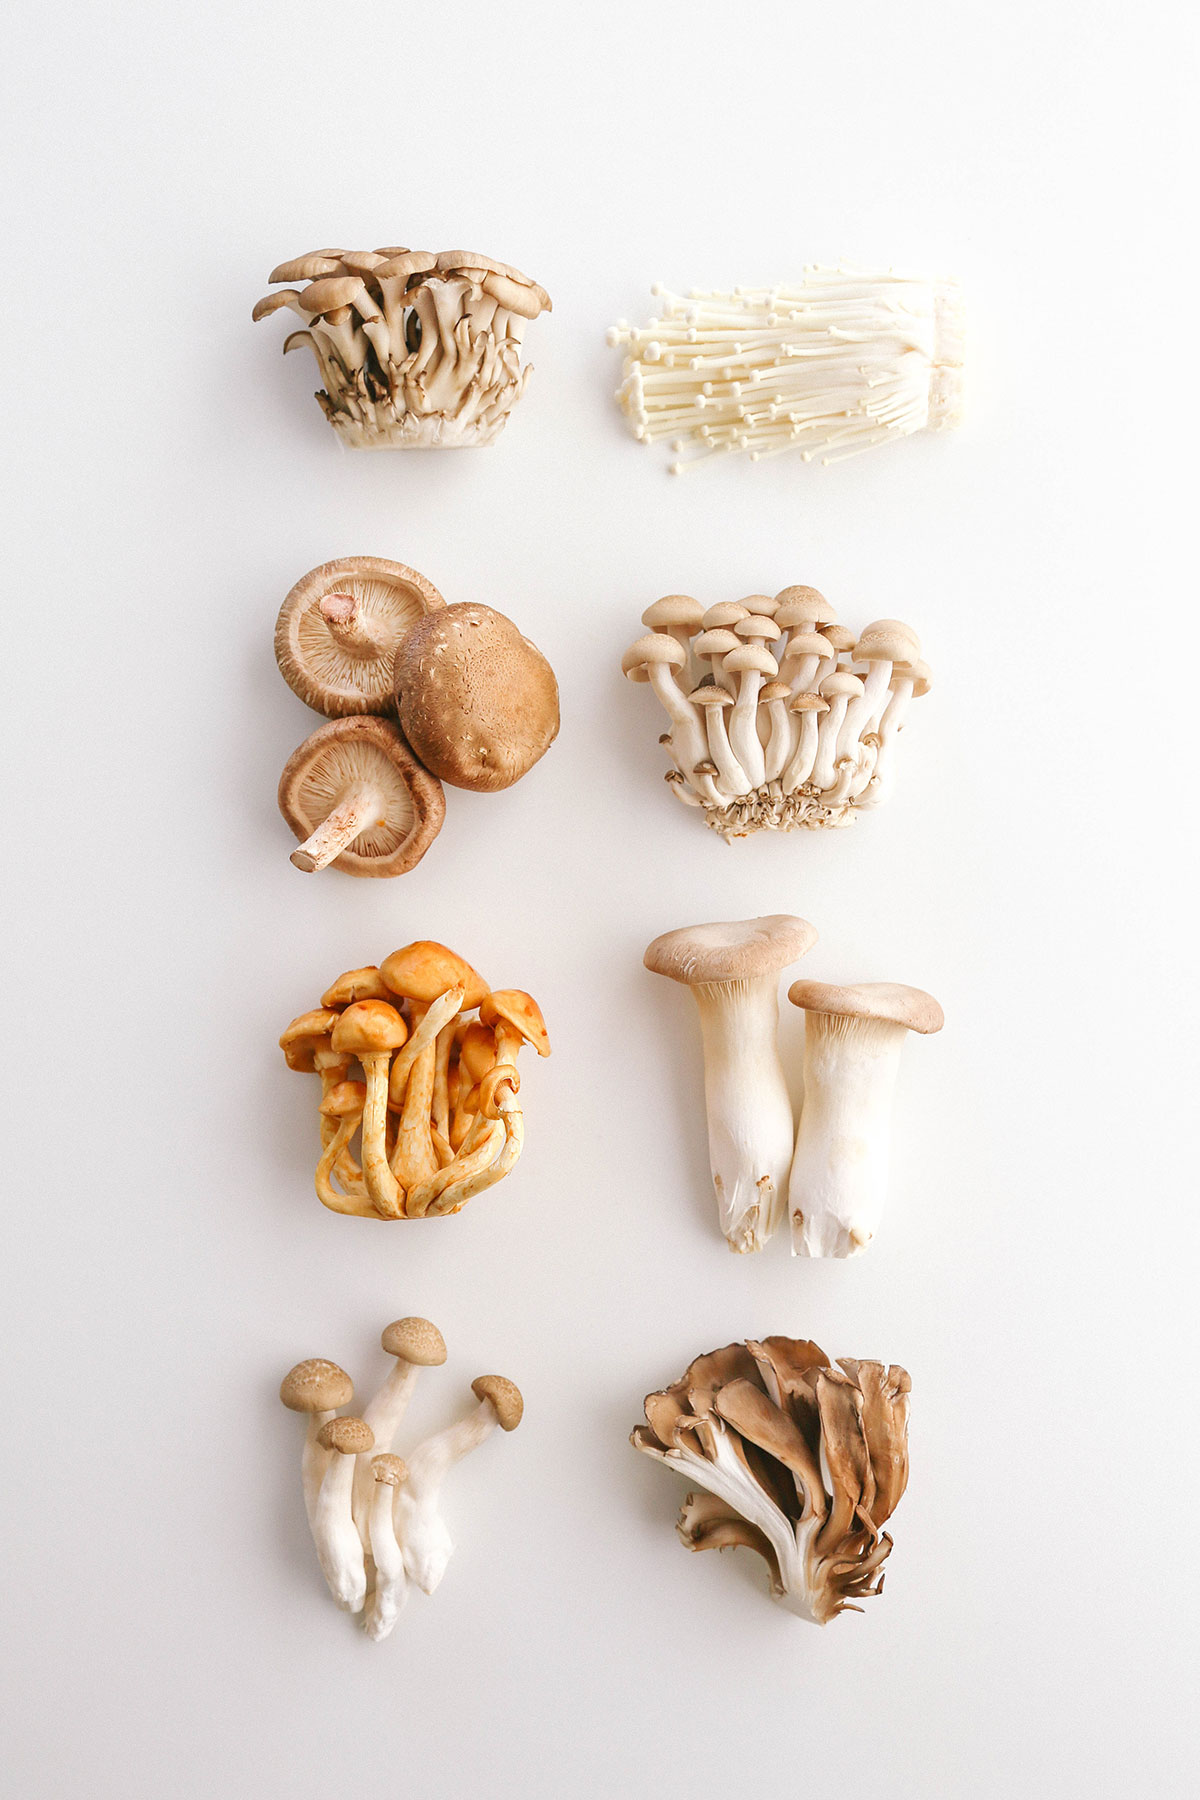 Japanese mushroom types and keto or low carb.